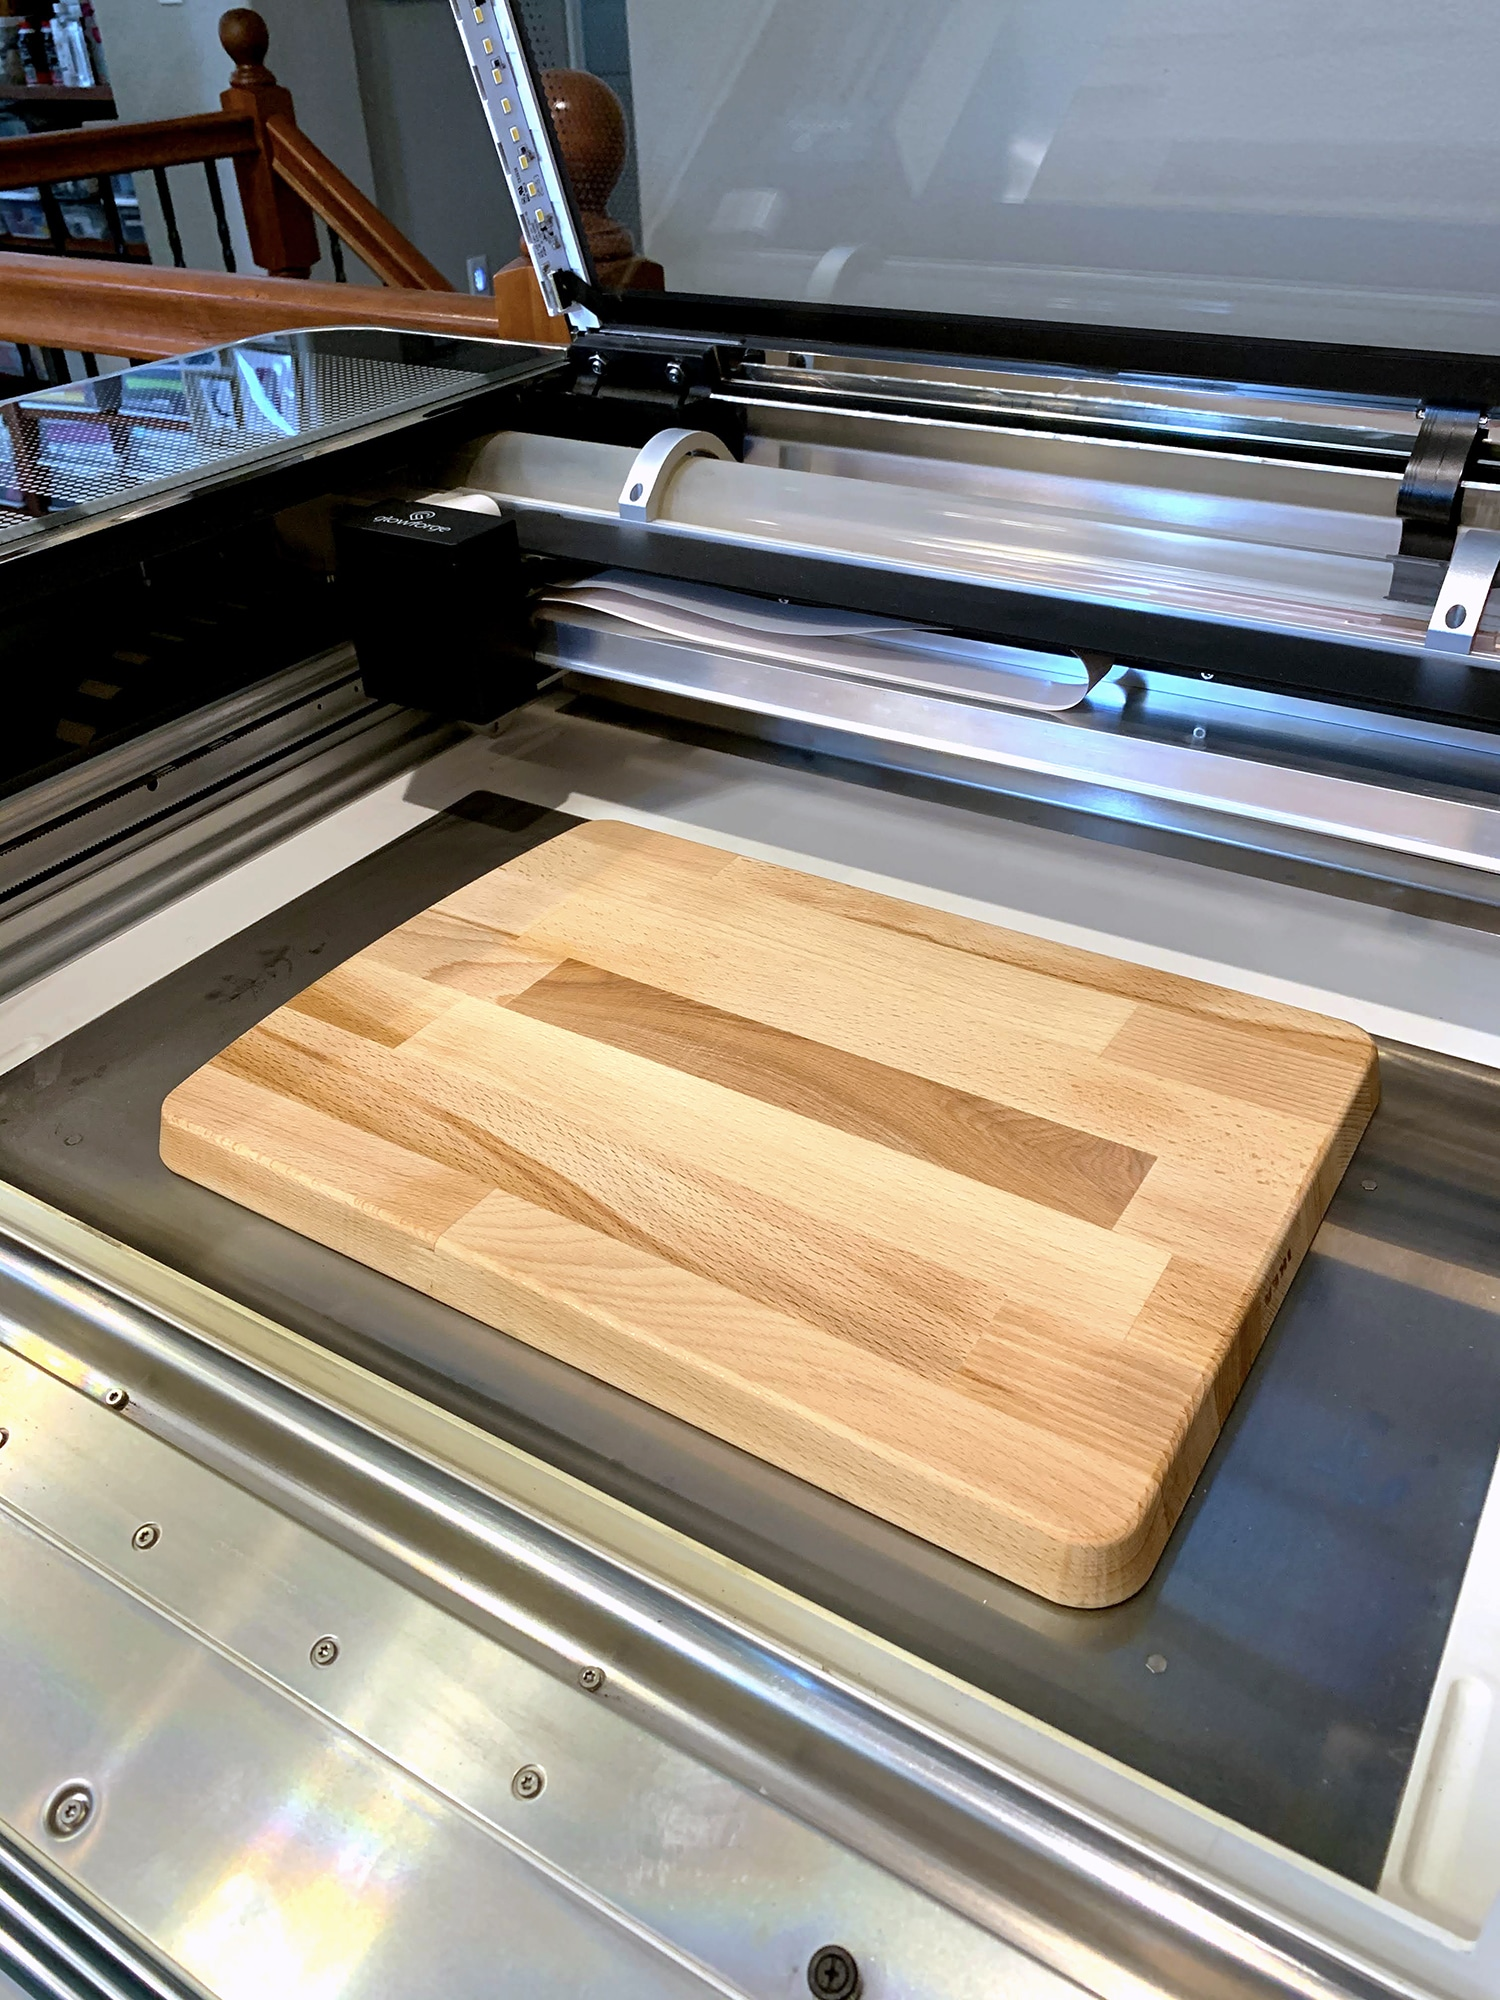 Glowforge machine with front dropped down and cutting board in base of machine